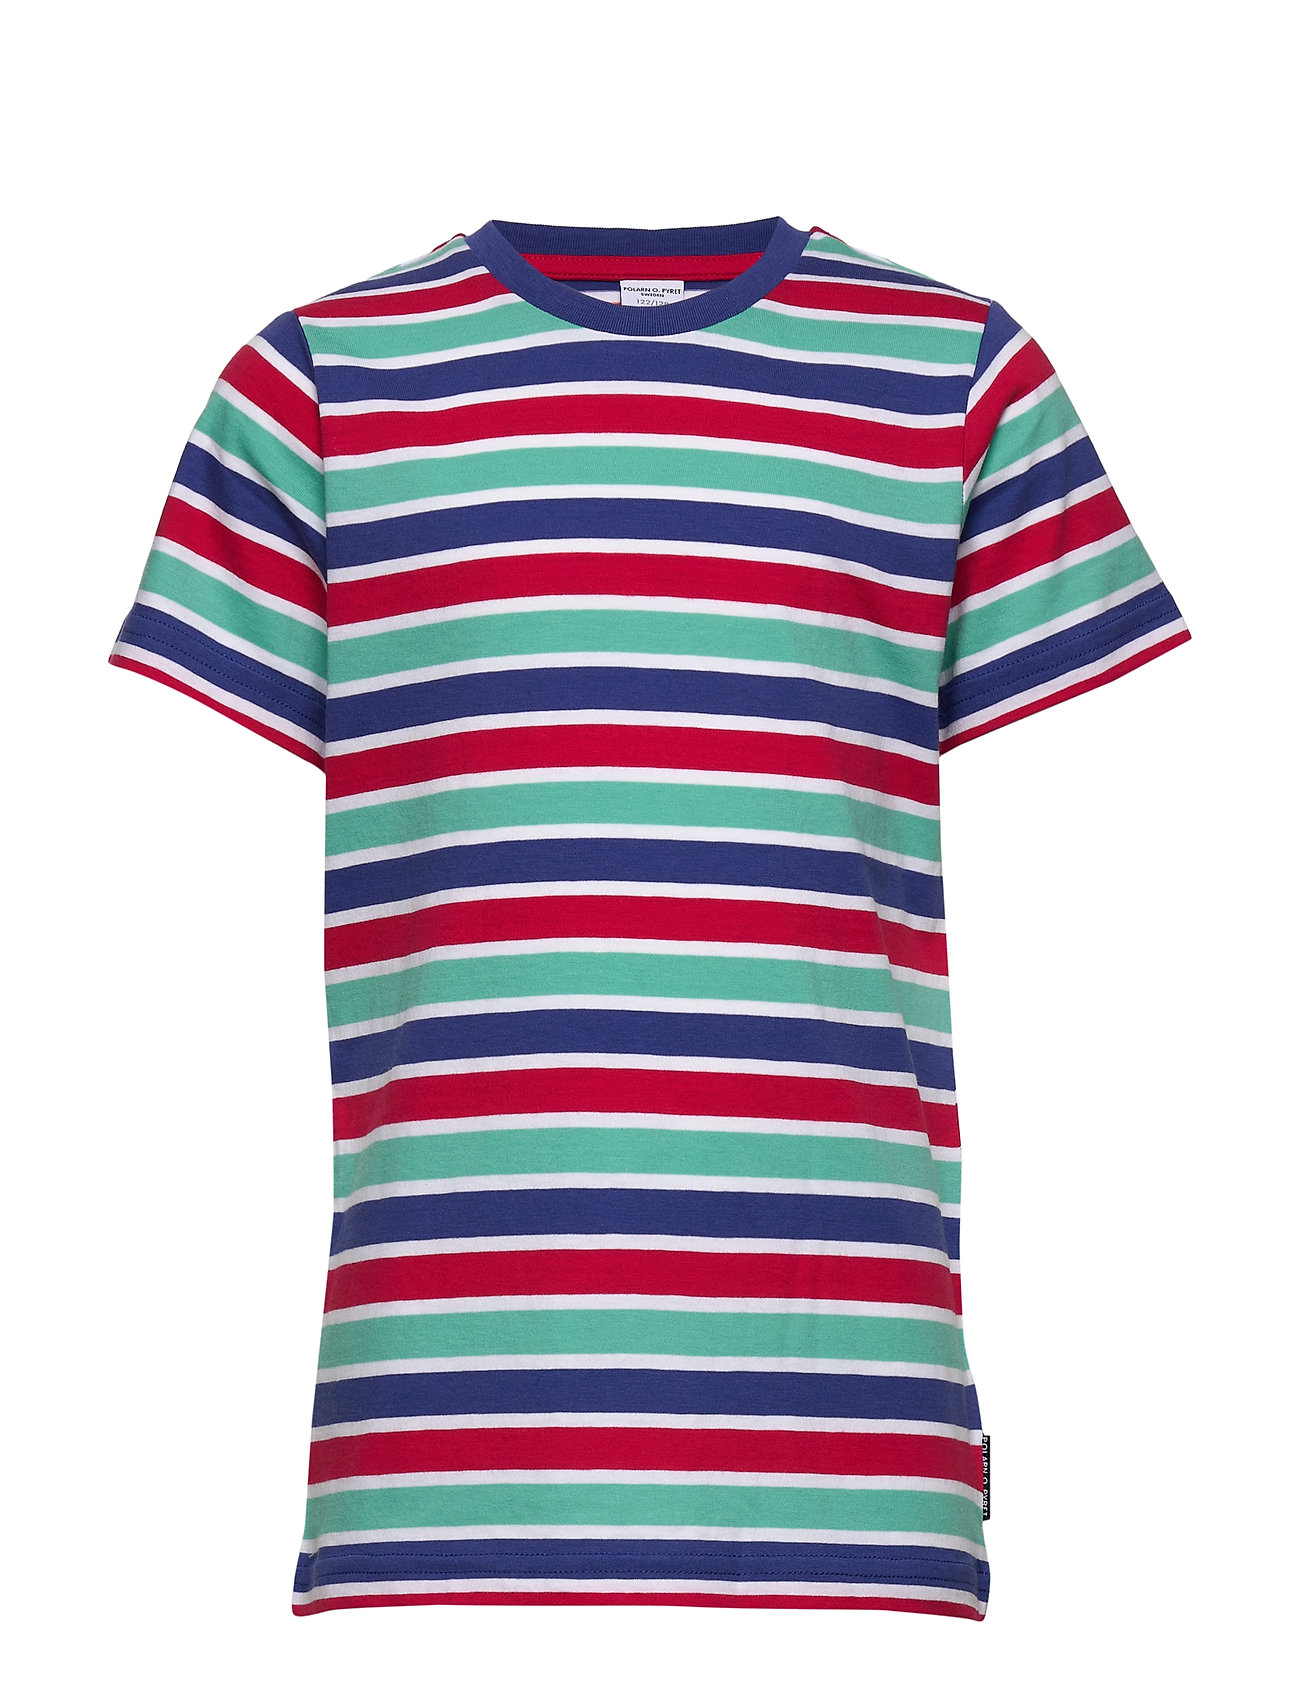 Polarn O. Pyret T-shirt S/S striped School - TIGERLILY